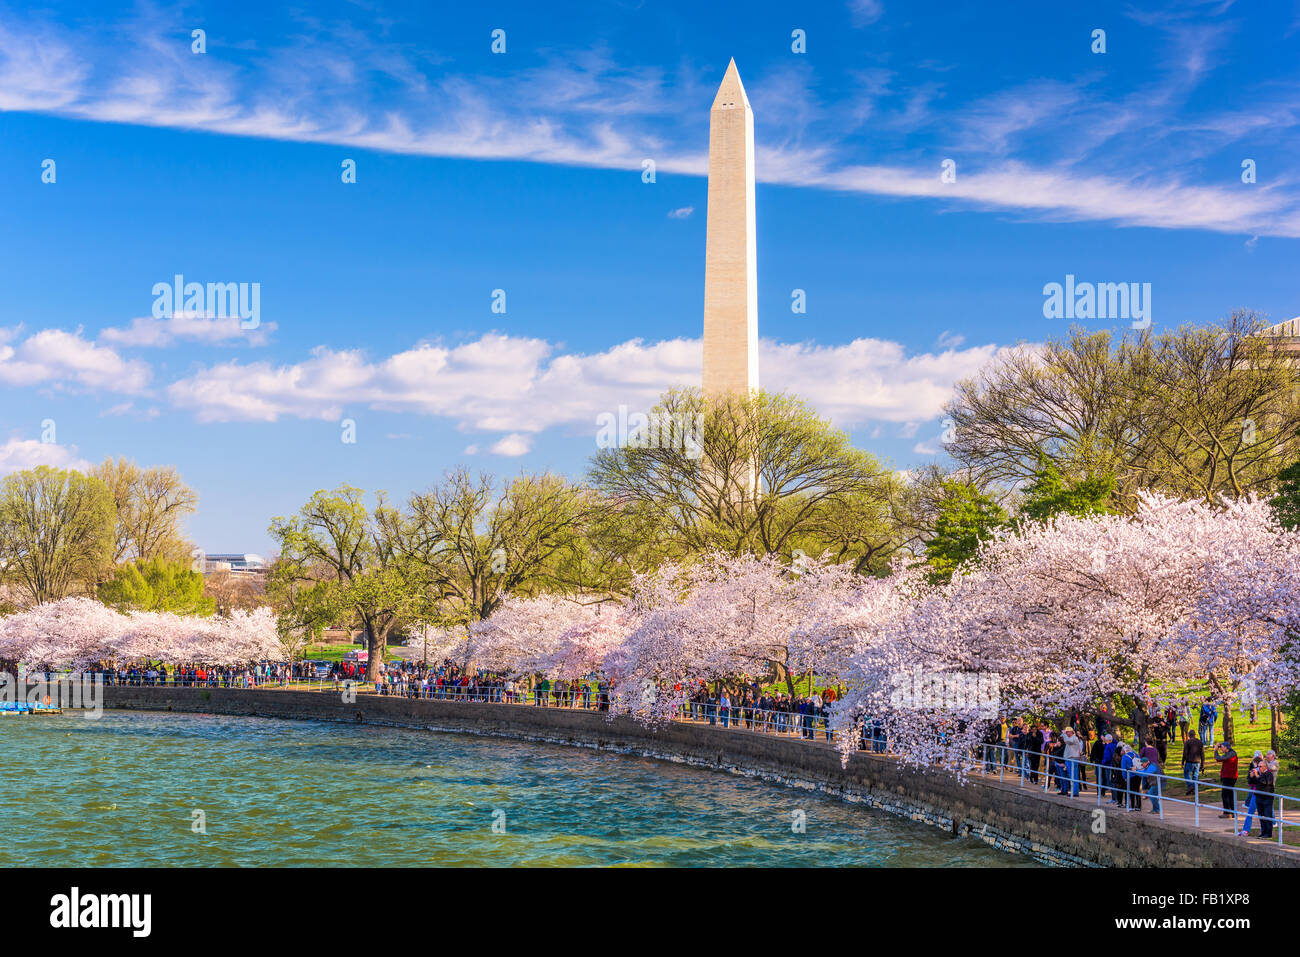 WASHINGTON DC - Le 10 avril 2015 : la foule à pied ci-dessous des cerisiers et le Washington Monument Photo Stock